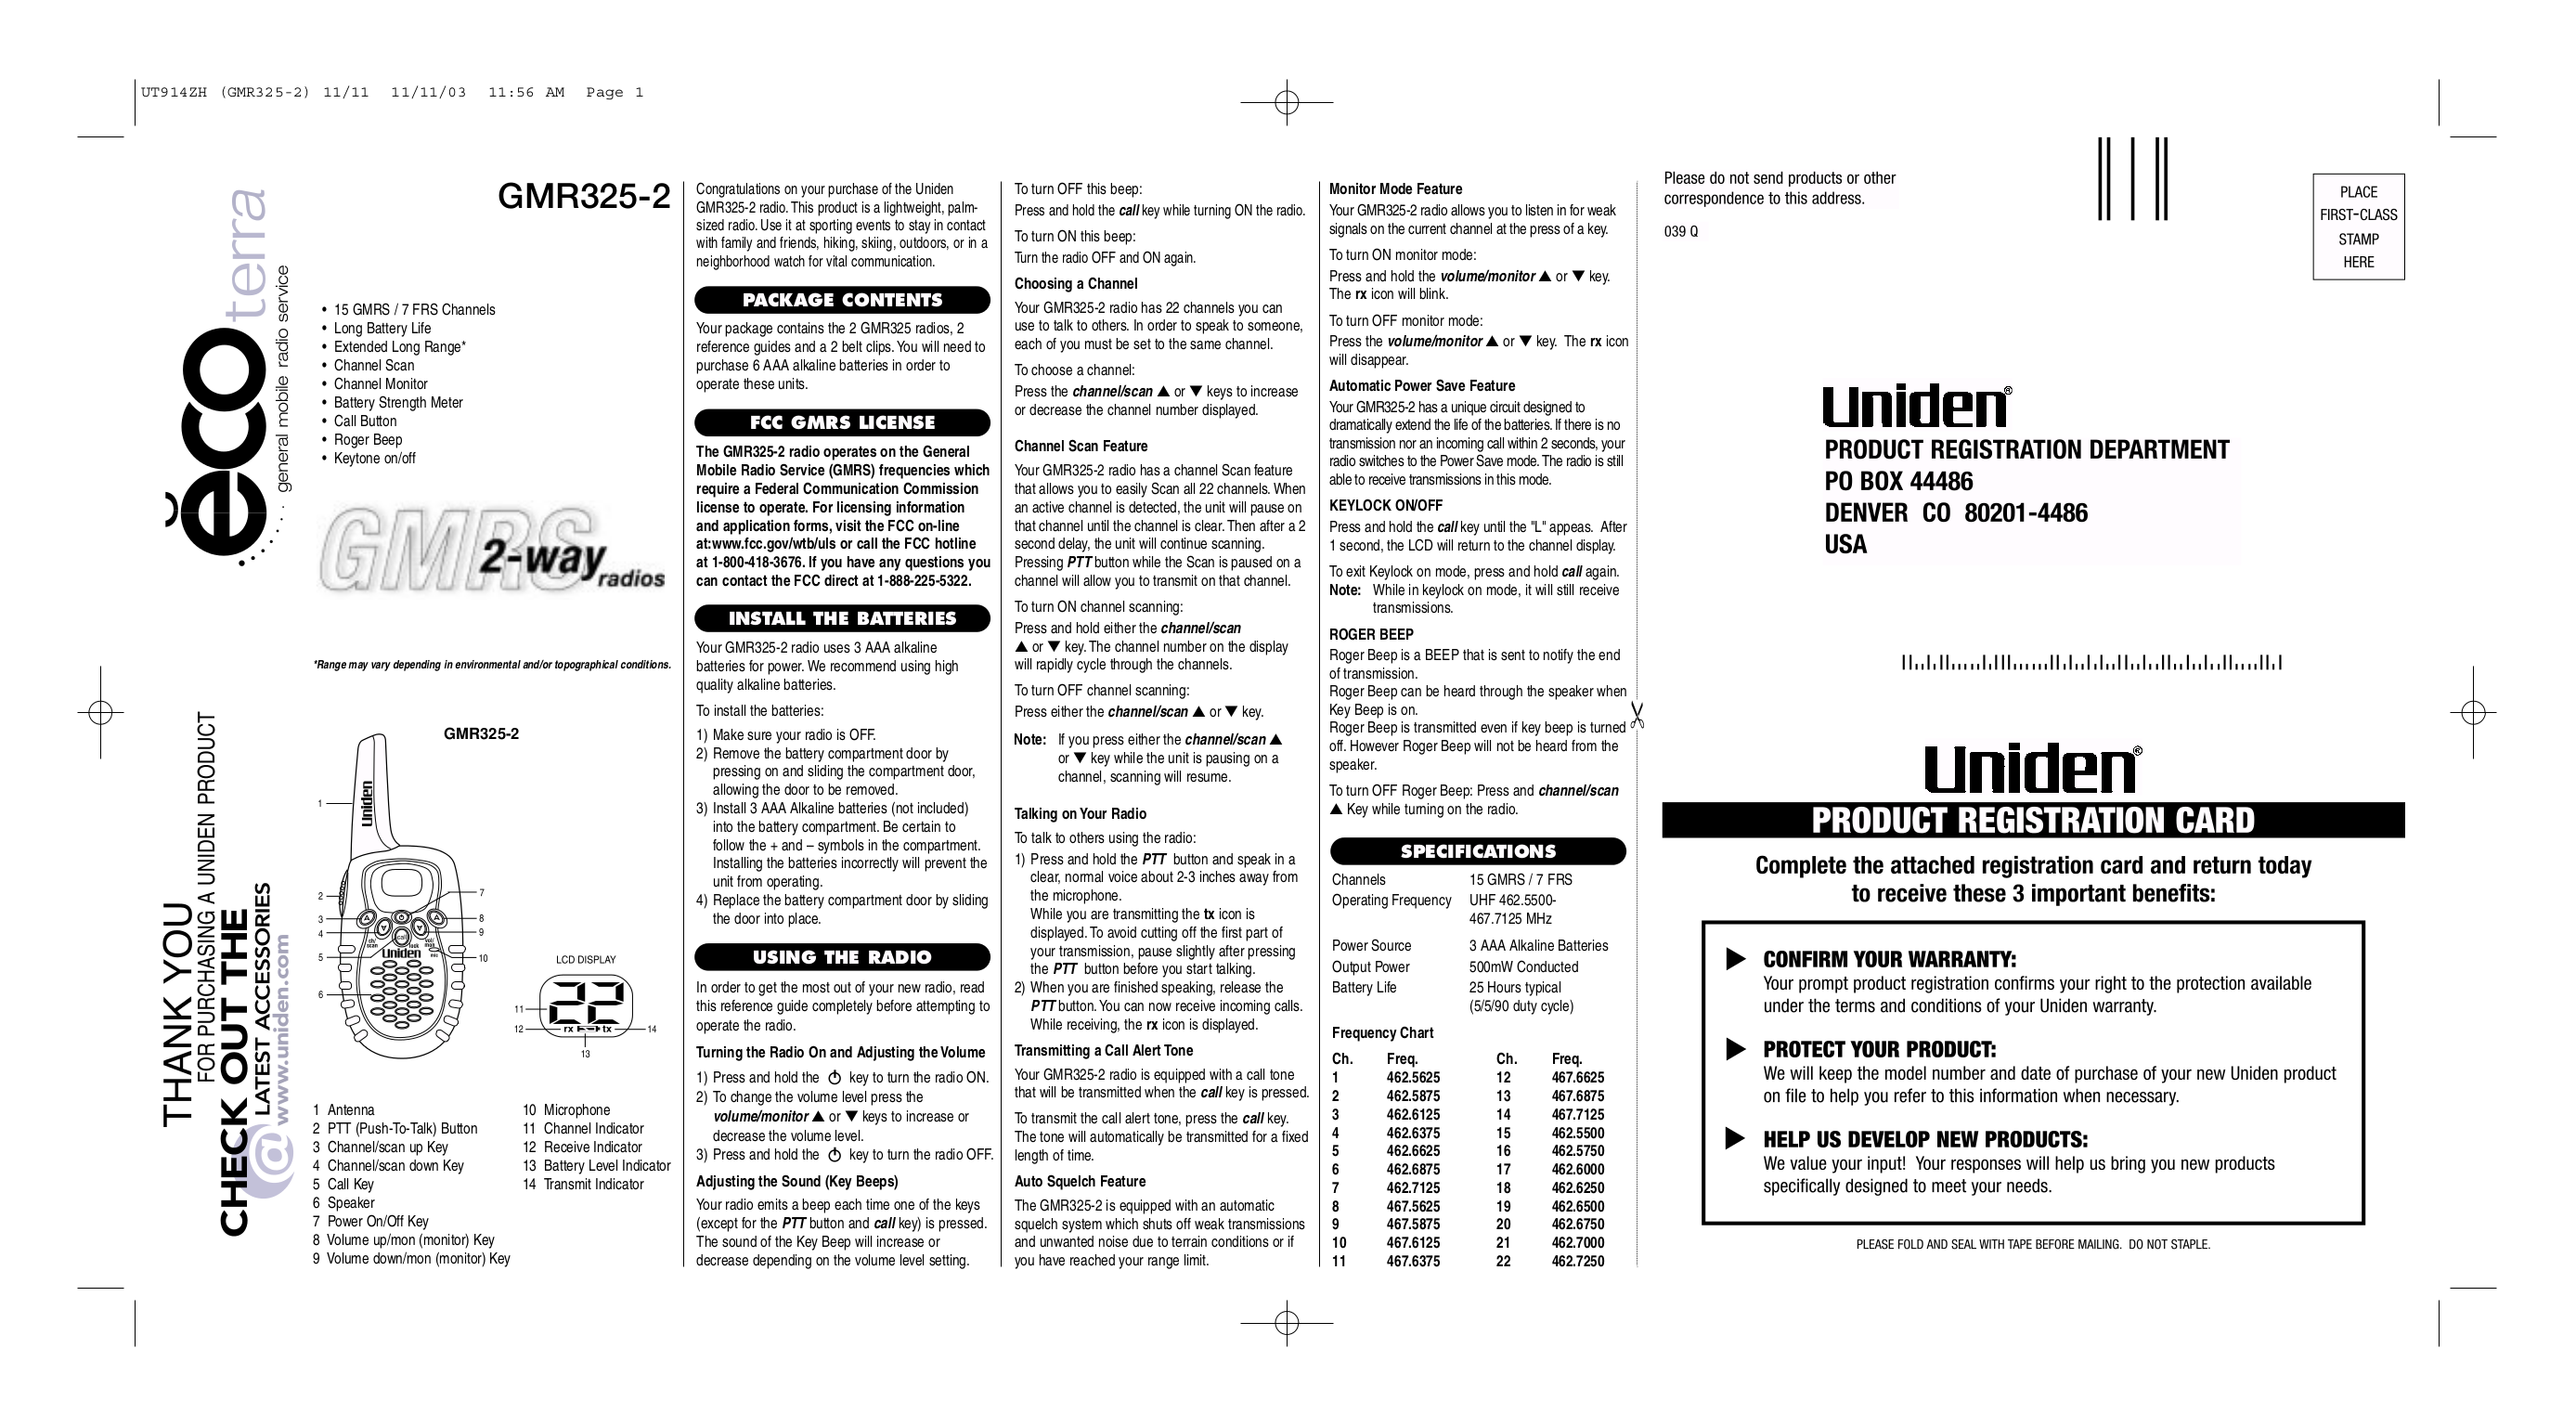 pdf for Uniden 2-way Radio GMR325-2 manual